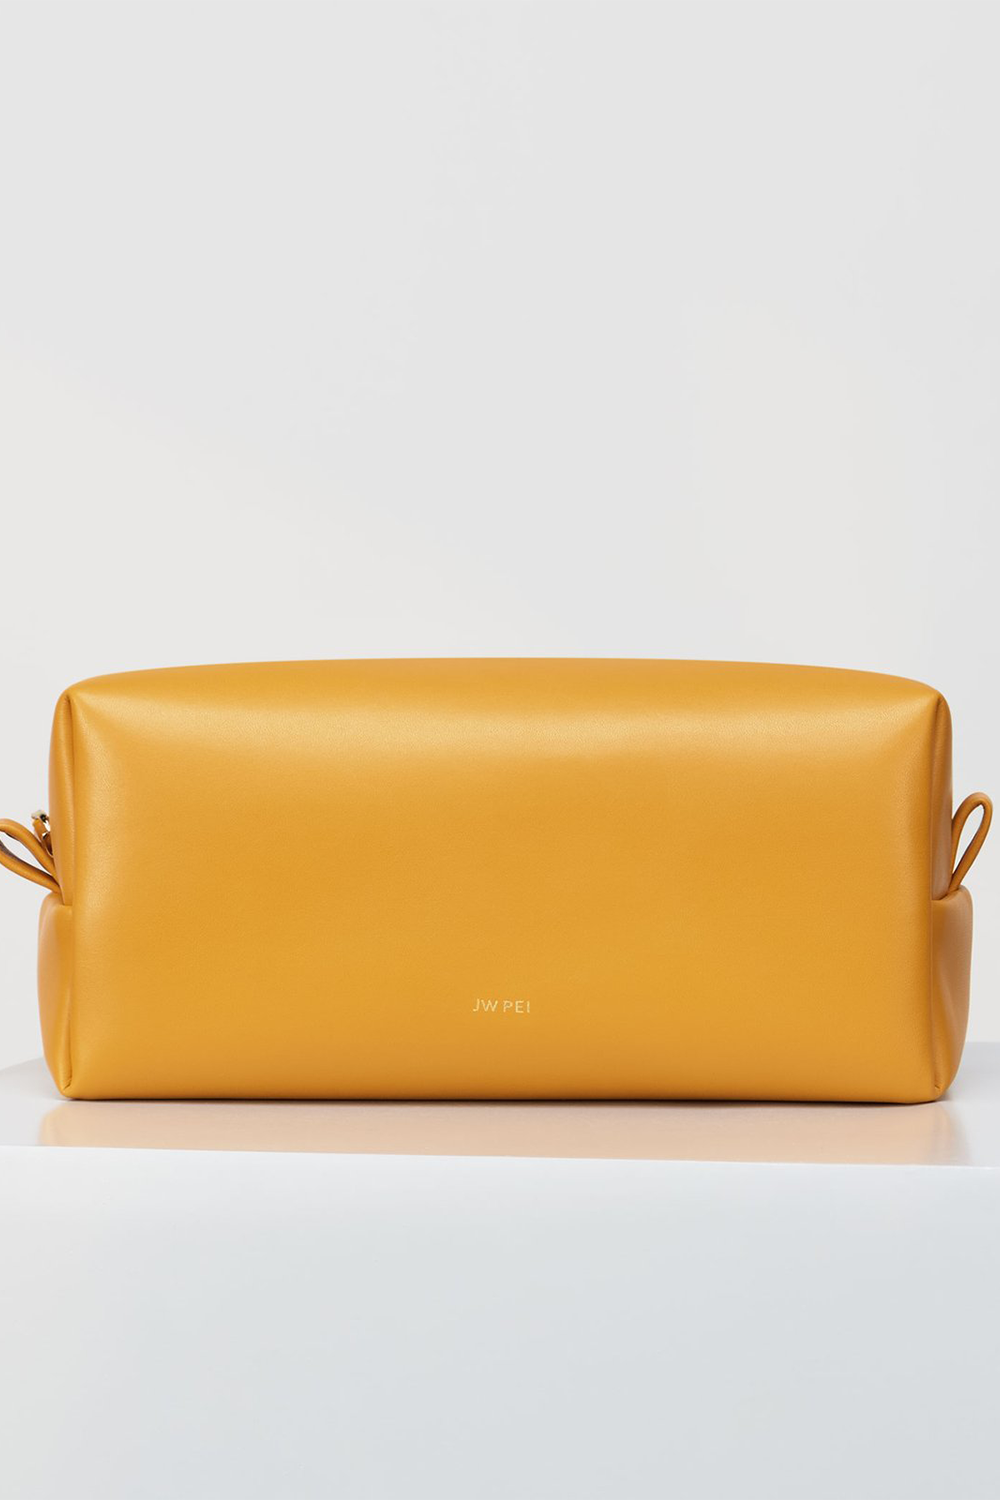 The Makeup Bag in Yellow